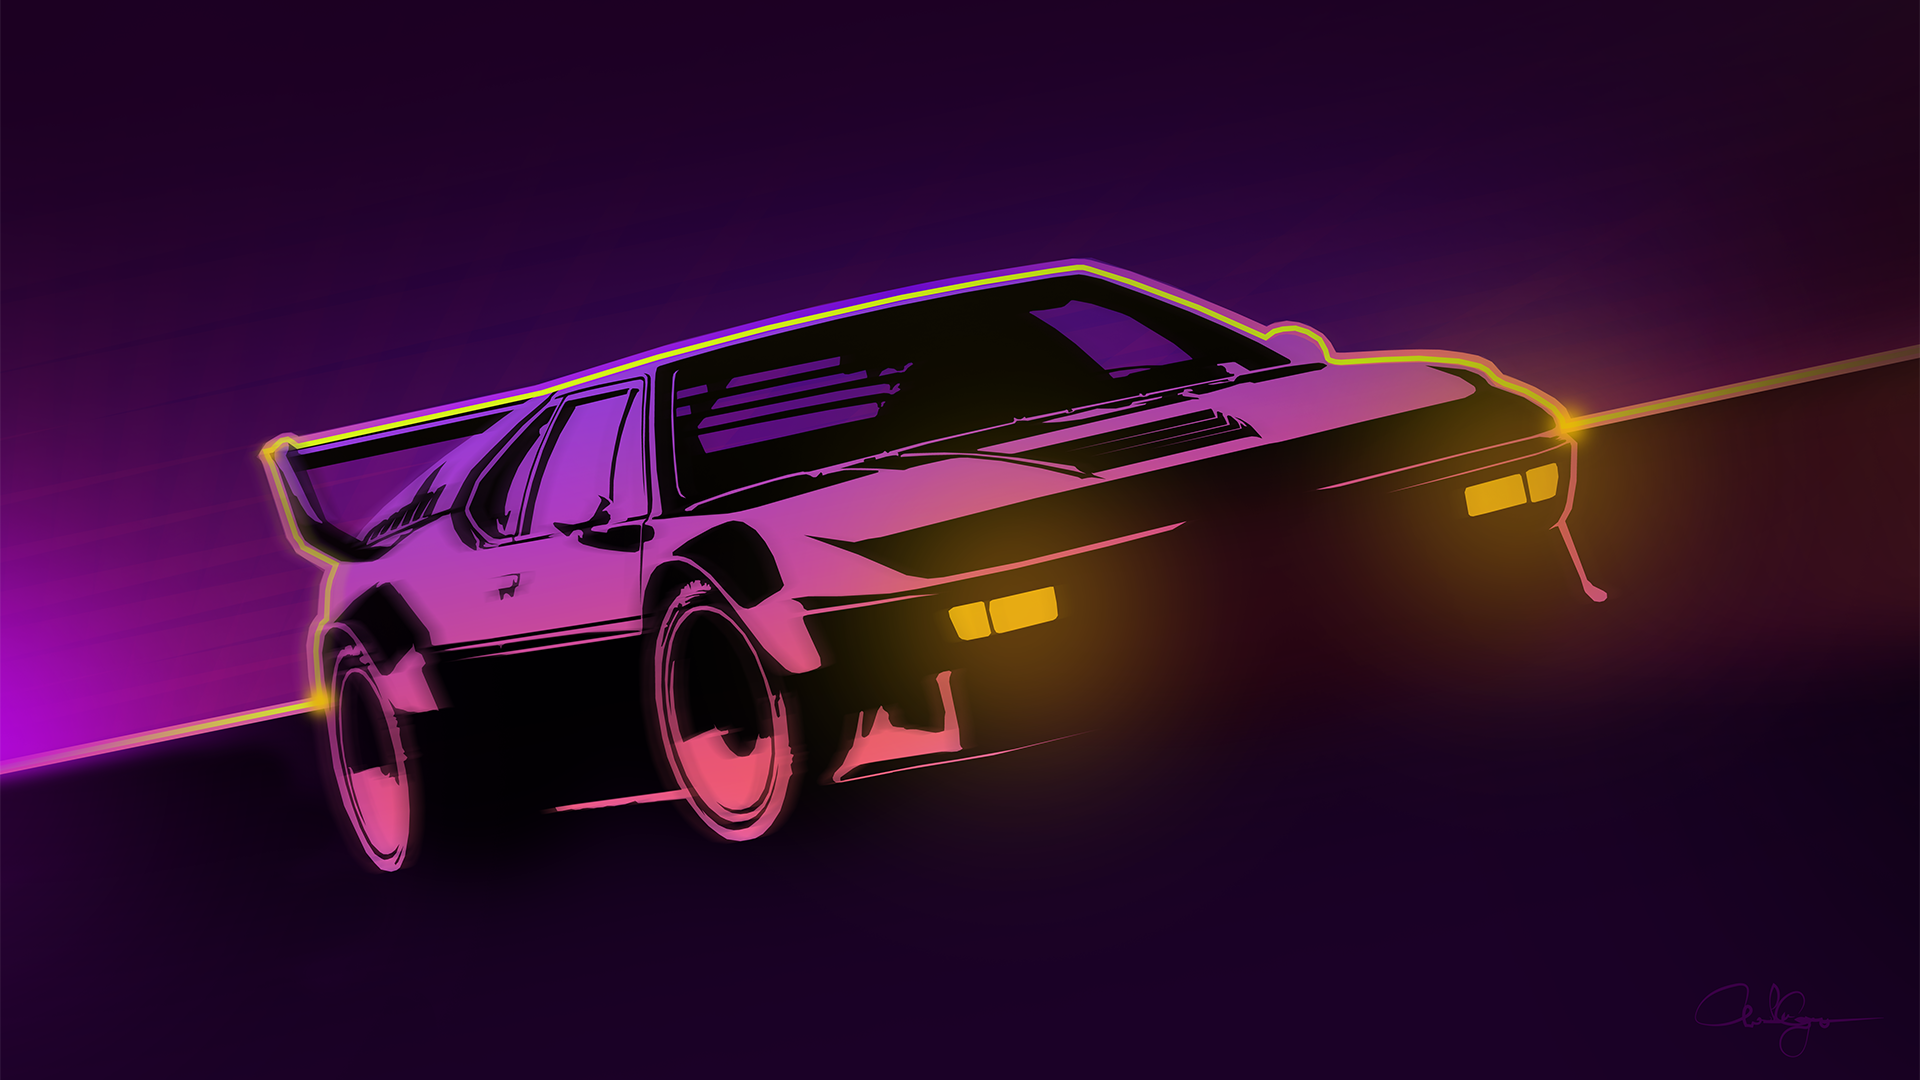 80s themed tribute to the BMW M1 [1920 x 1080] Themes in 2019 1920x1080